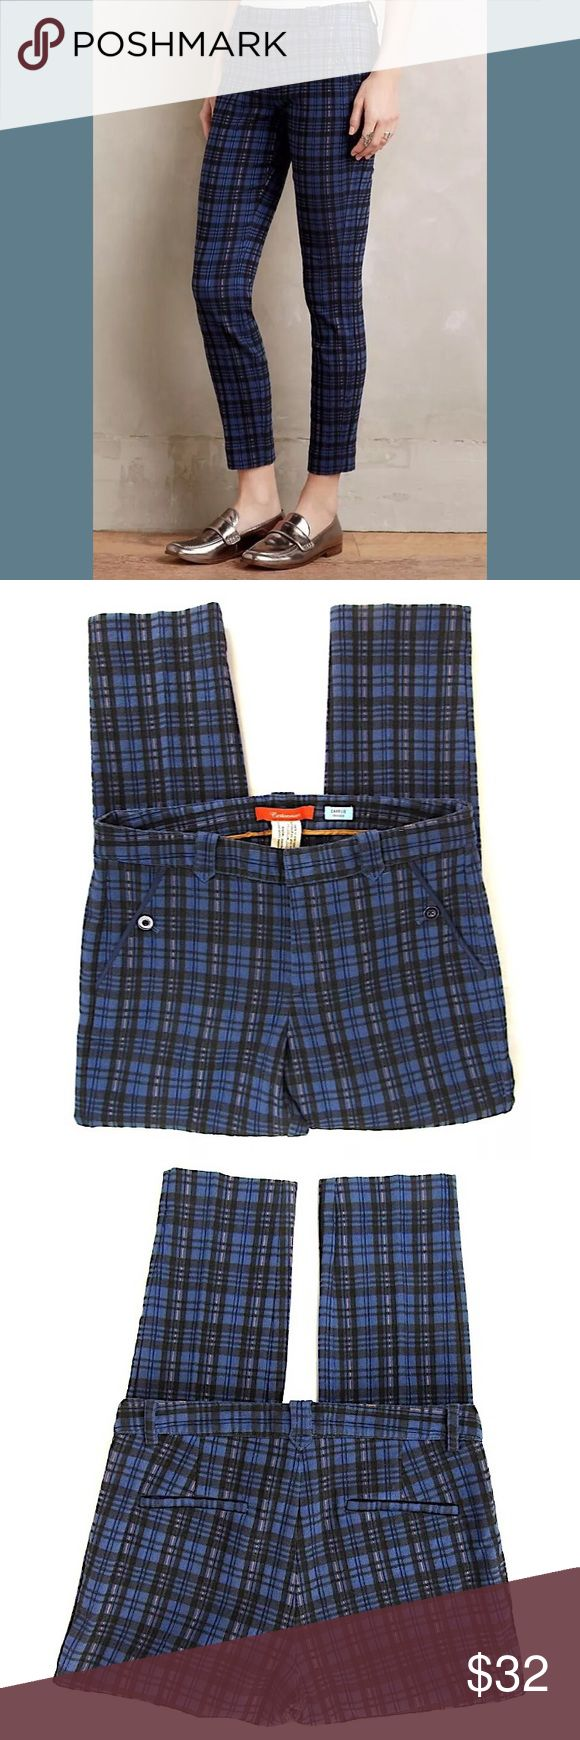 """Cartonnier Charlie Trousers Tartan Plaid Sz 10 Brand: Cartonnier/Anthropolgie Style:  Charlie Trousers, cropped skinny pants, 2 back pockets, 2 front pockets. Size:  10 Color/Pattern:  Blue tartan plaid Material:  66% cotton, 30% polyester, 4% spandex Measurements taken flat/approx:  -Waist:  16.5"""" -Inseam:  27.5"""" -Rise:  10"""" -Leg Opening:  6"""" Garment Care:   Turn inside out before washing.  Machine wash cold.  Condition: No rips, tears or stains. Smoke free. Anthropologie Pants Ankle…"""